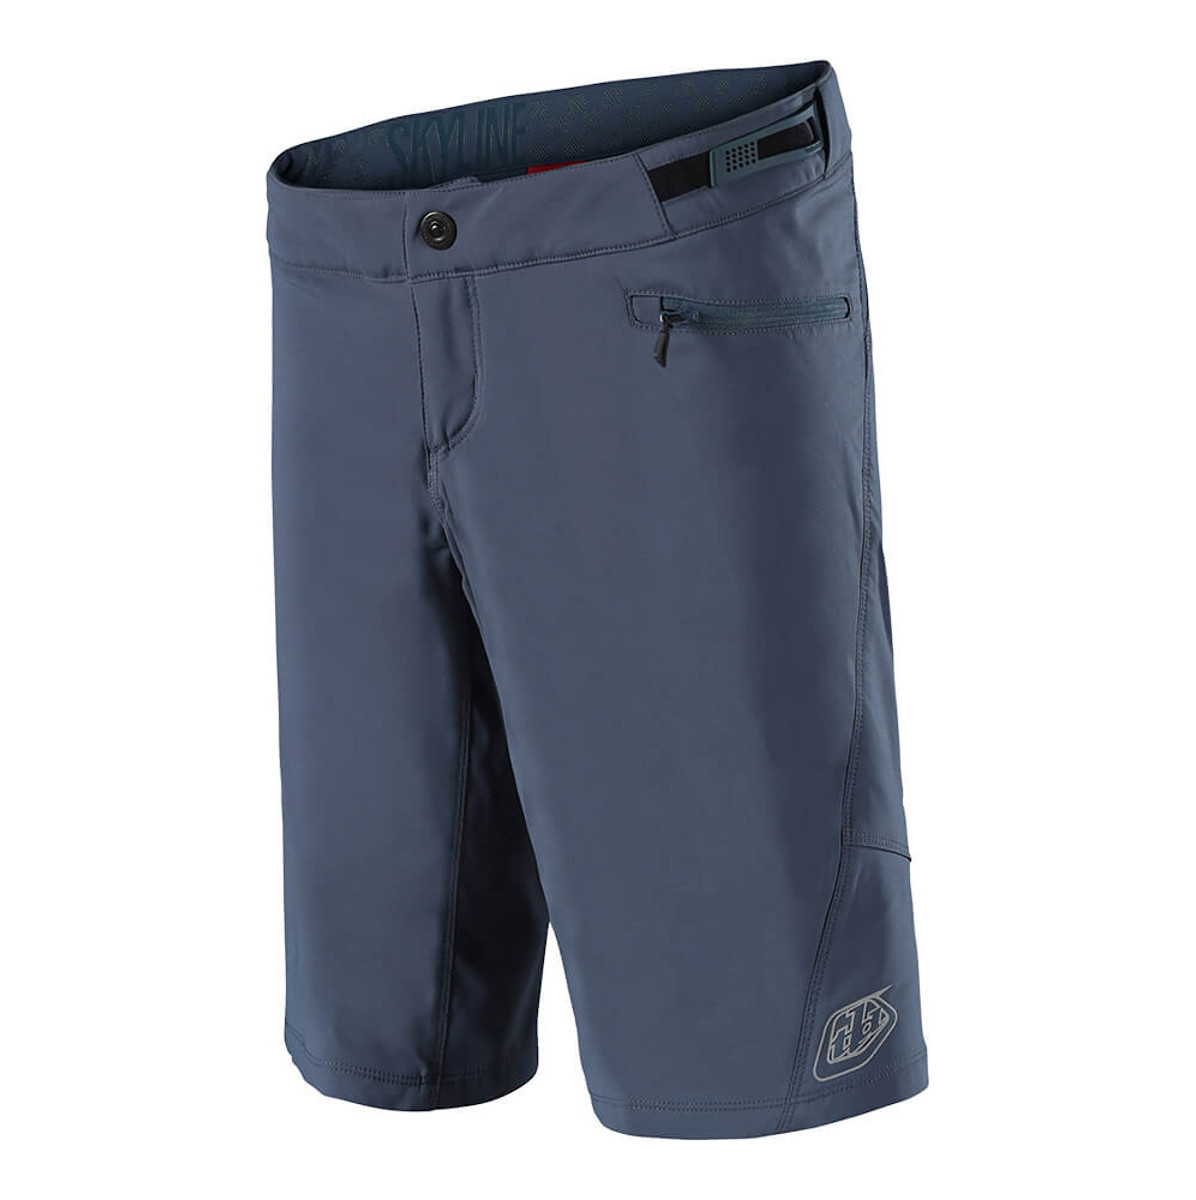 2018 TLD Skyline Women's Short Gray